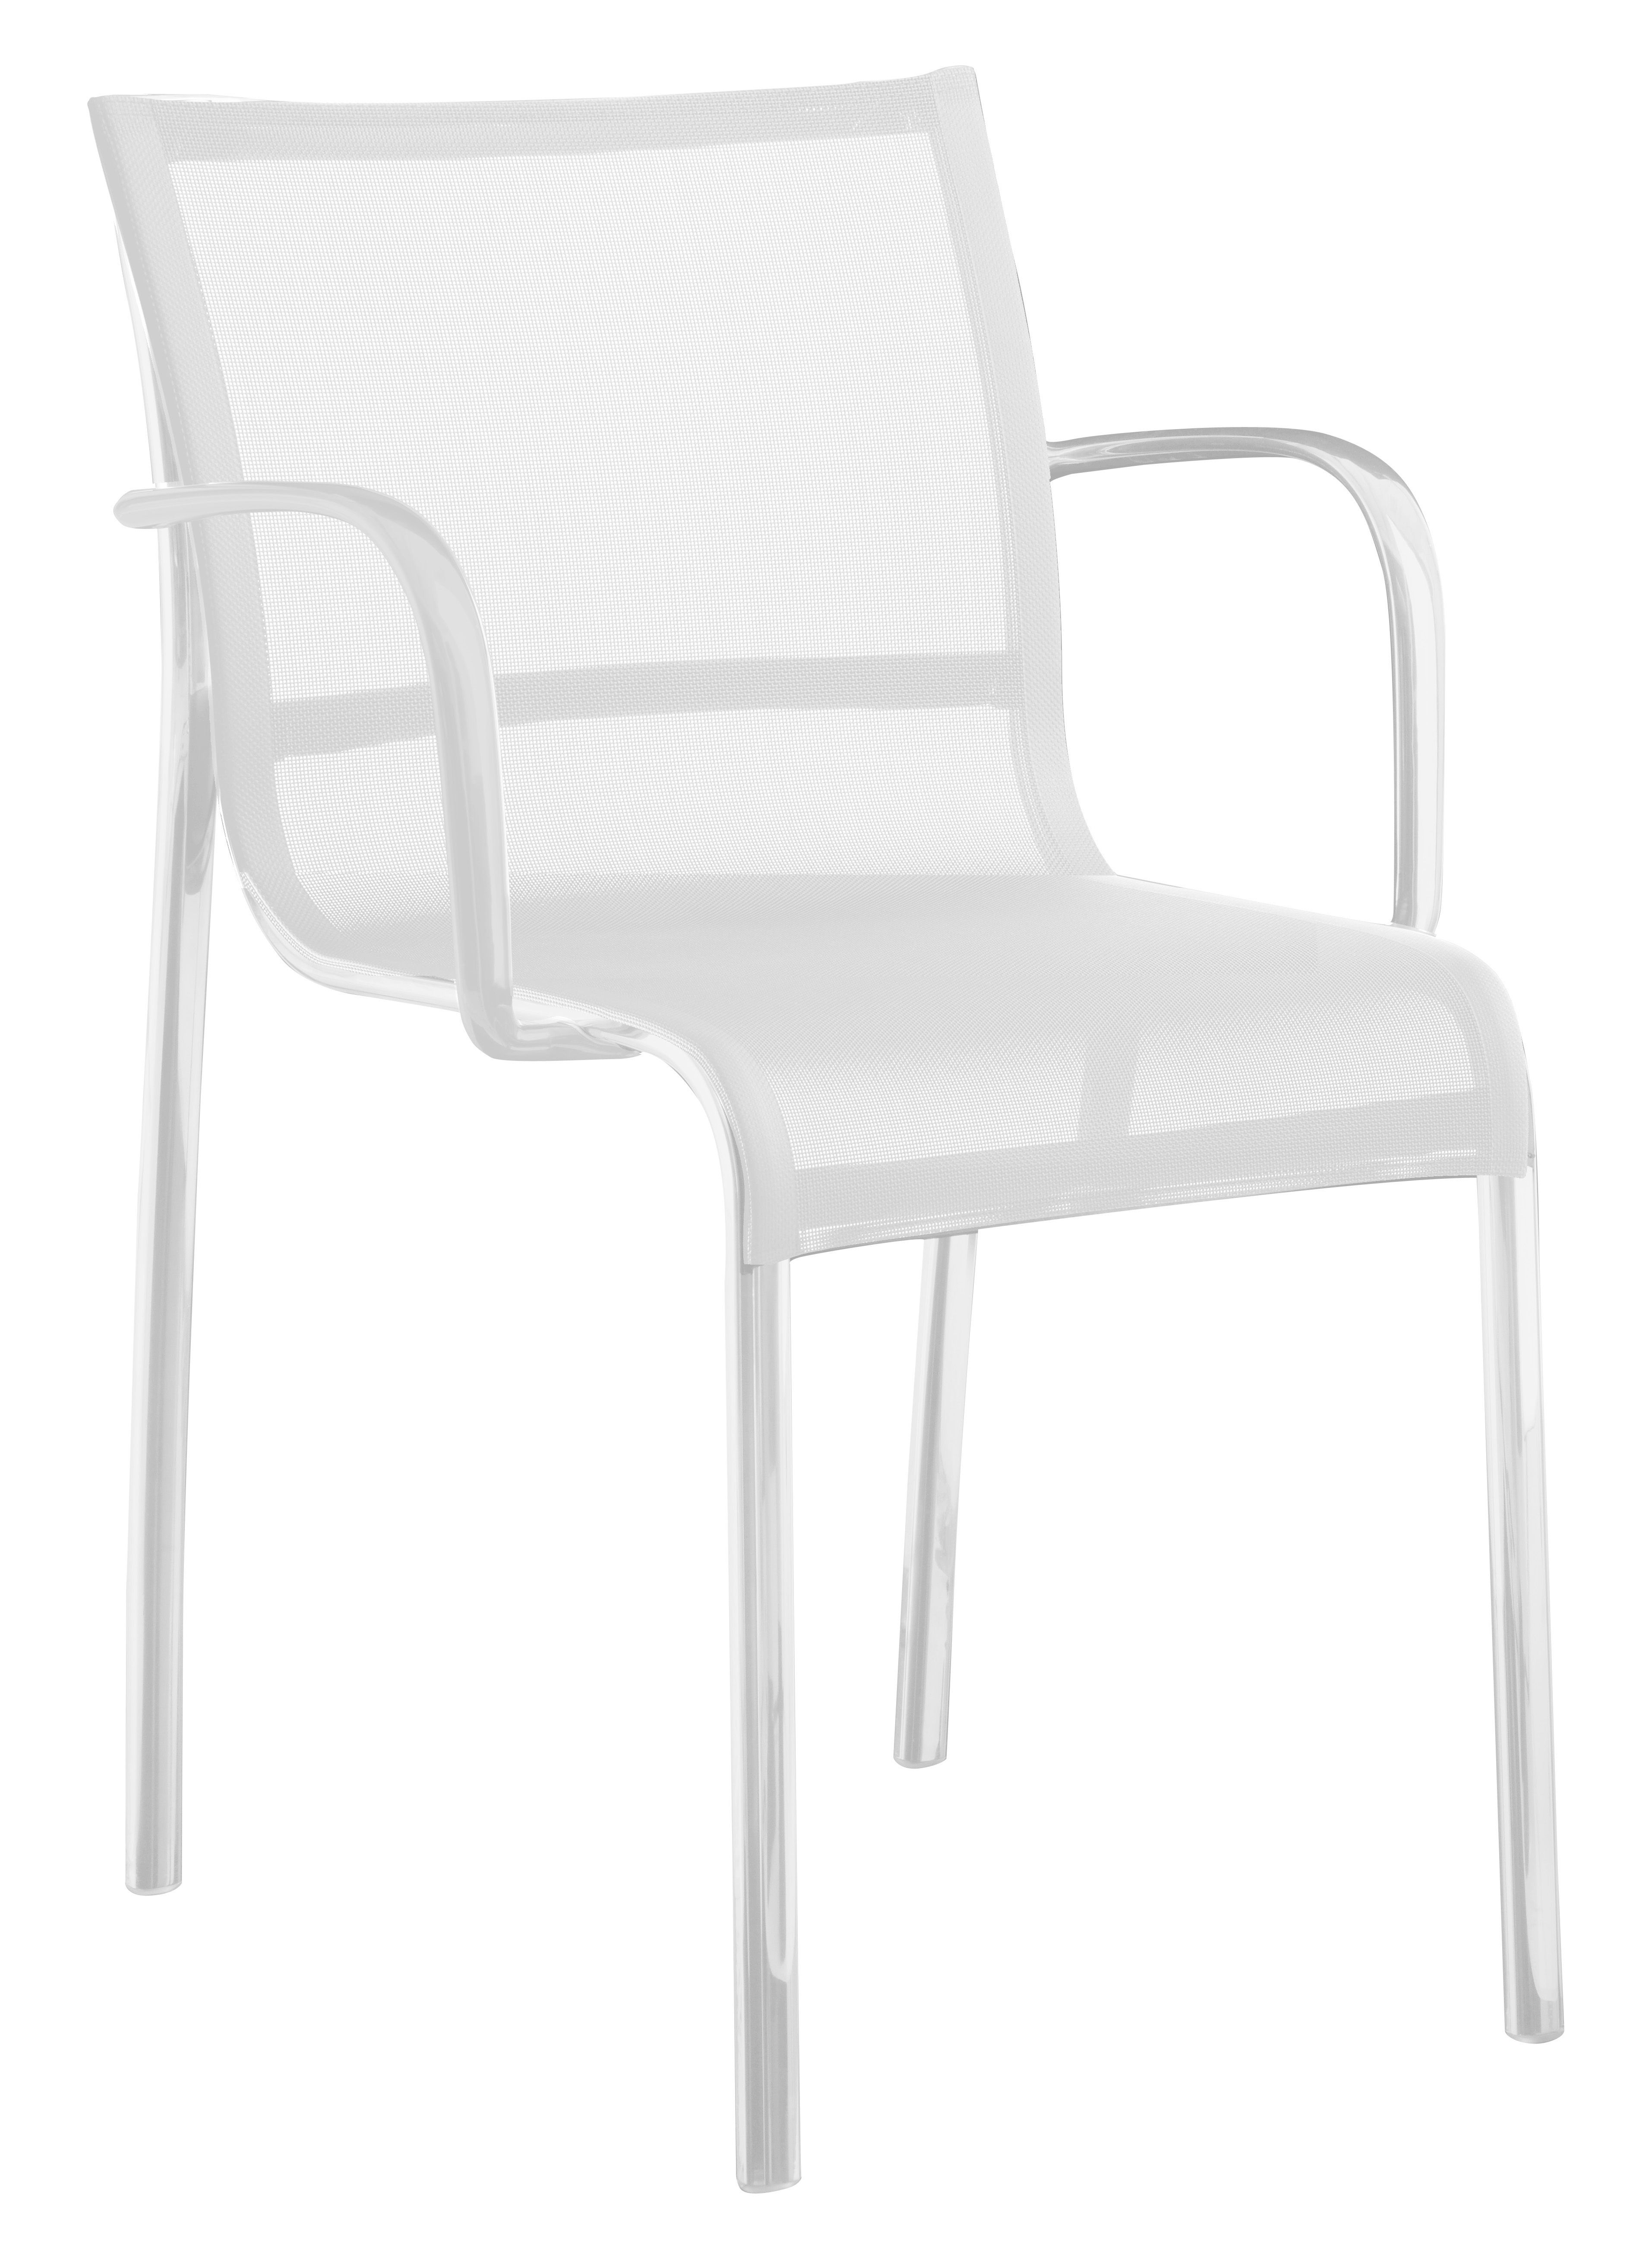 Furniture - Chairs - Paso Doble Stackable armchair - Fabric by Magis - White - Cloth, Varnished aluminium